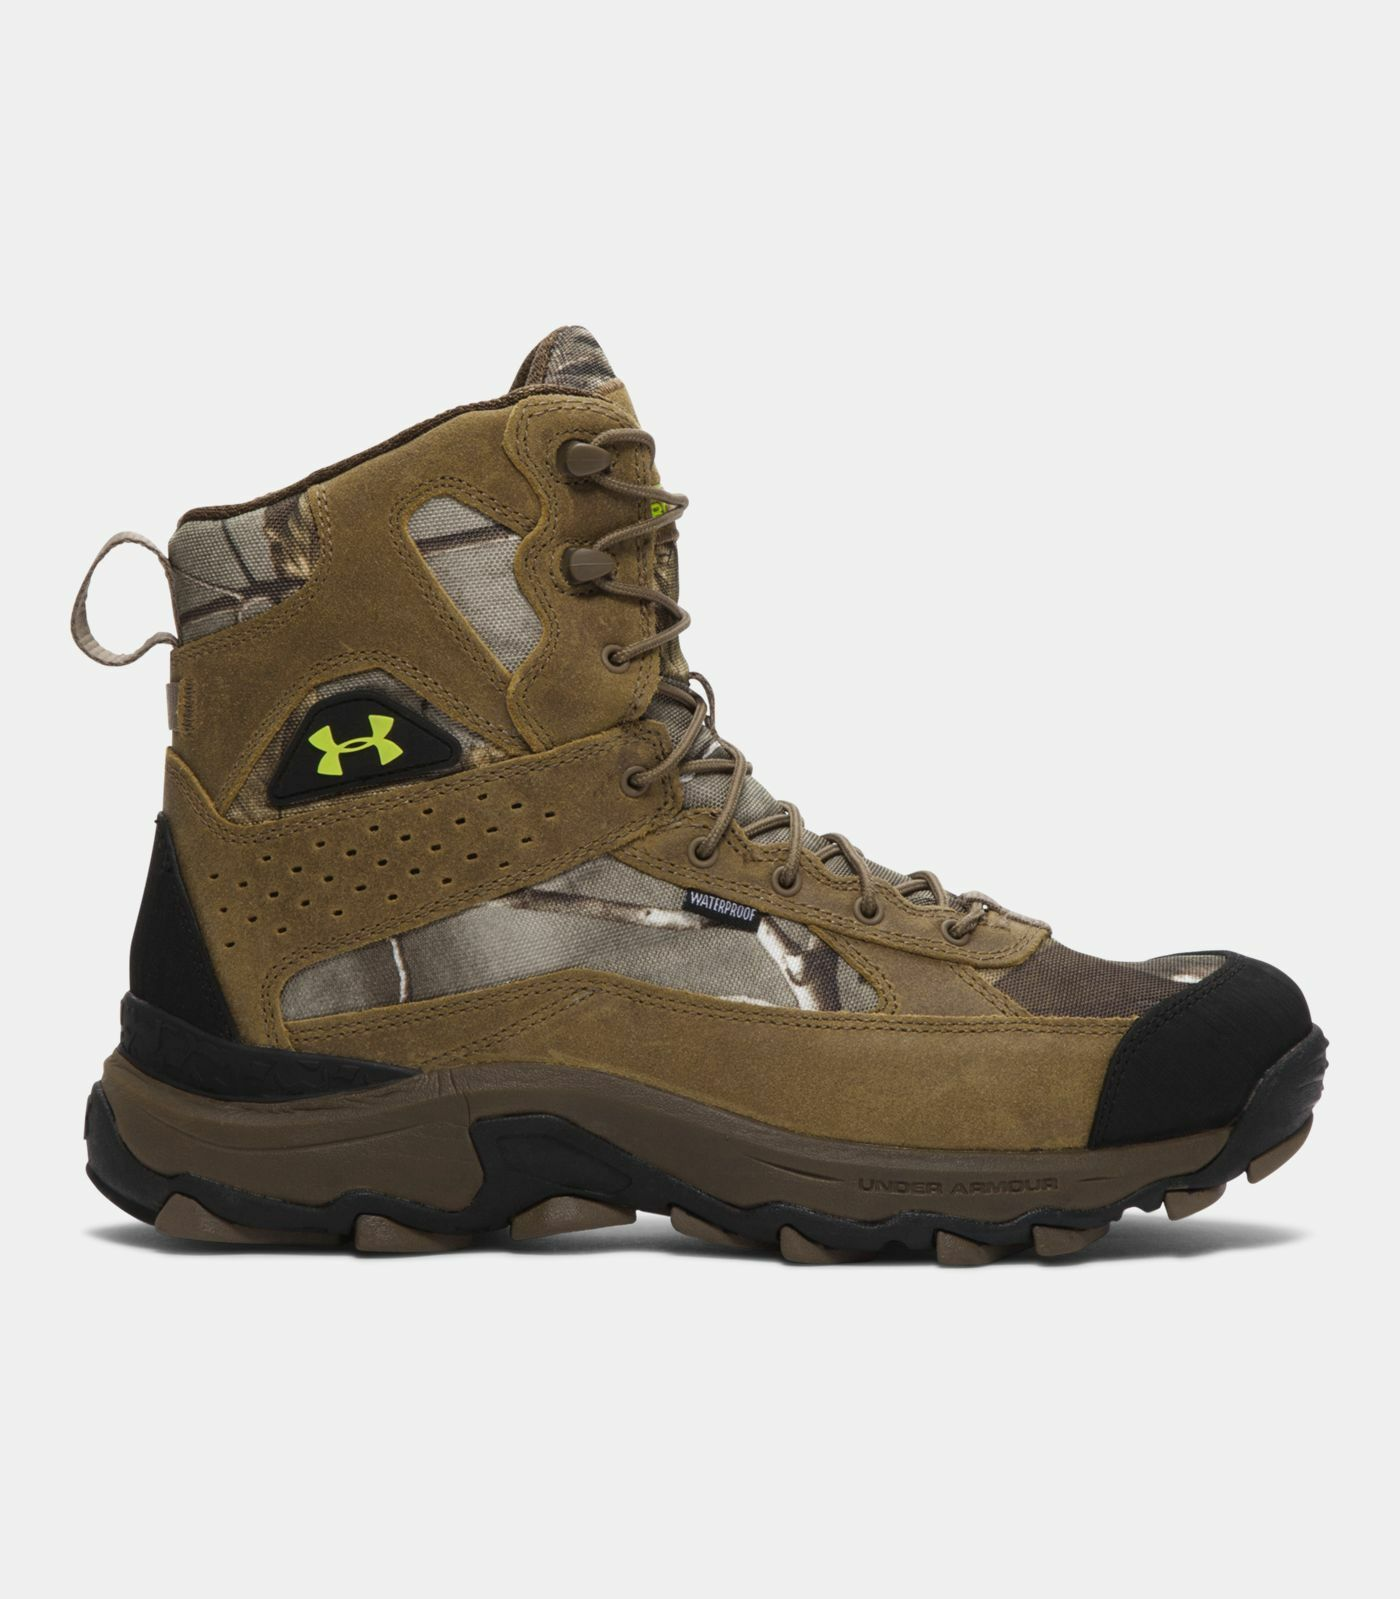 Under Armour Speed Freek Bozeman Hiking Hunting Stiefel 1250115-946 US 10.5